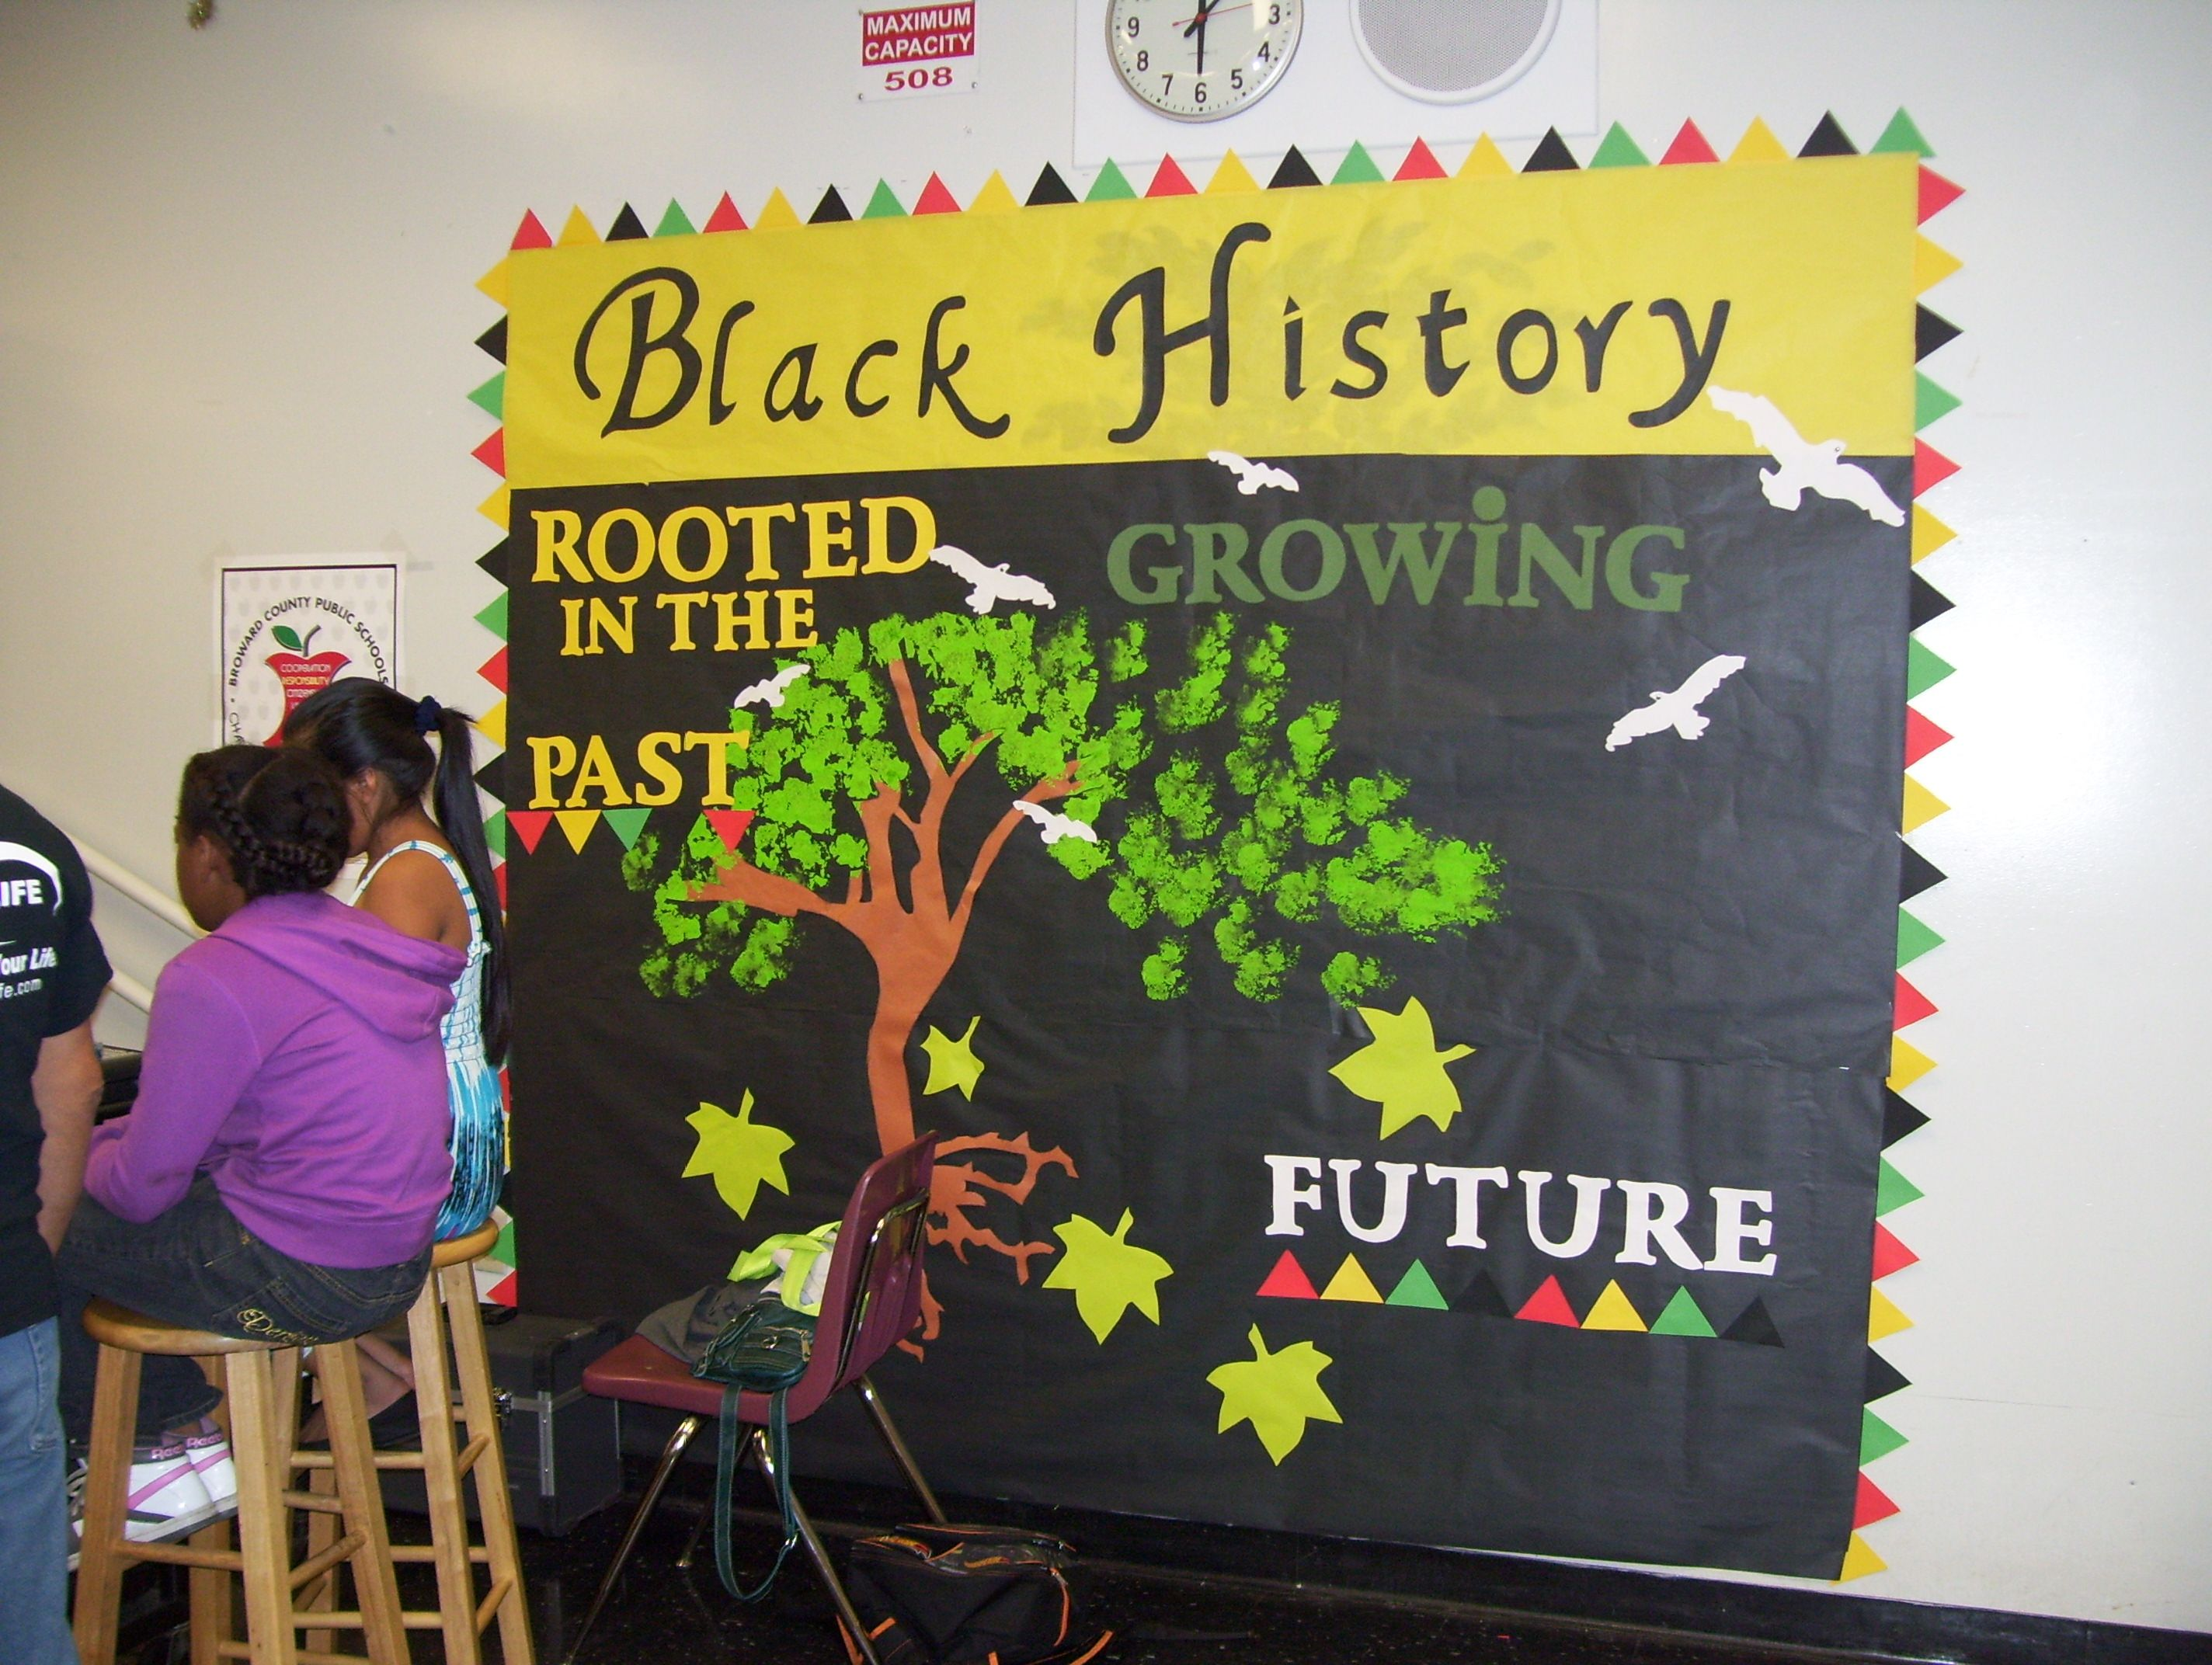 best images about black history month ideas black history month ideas